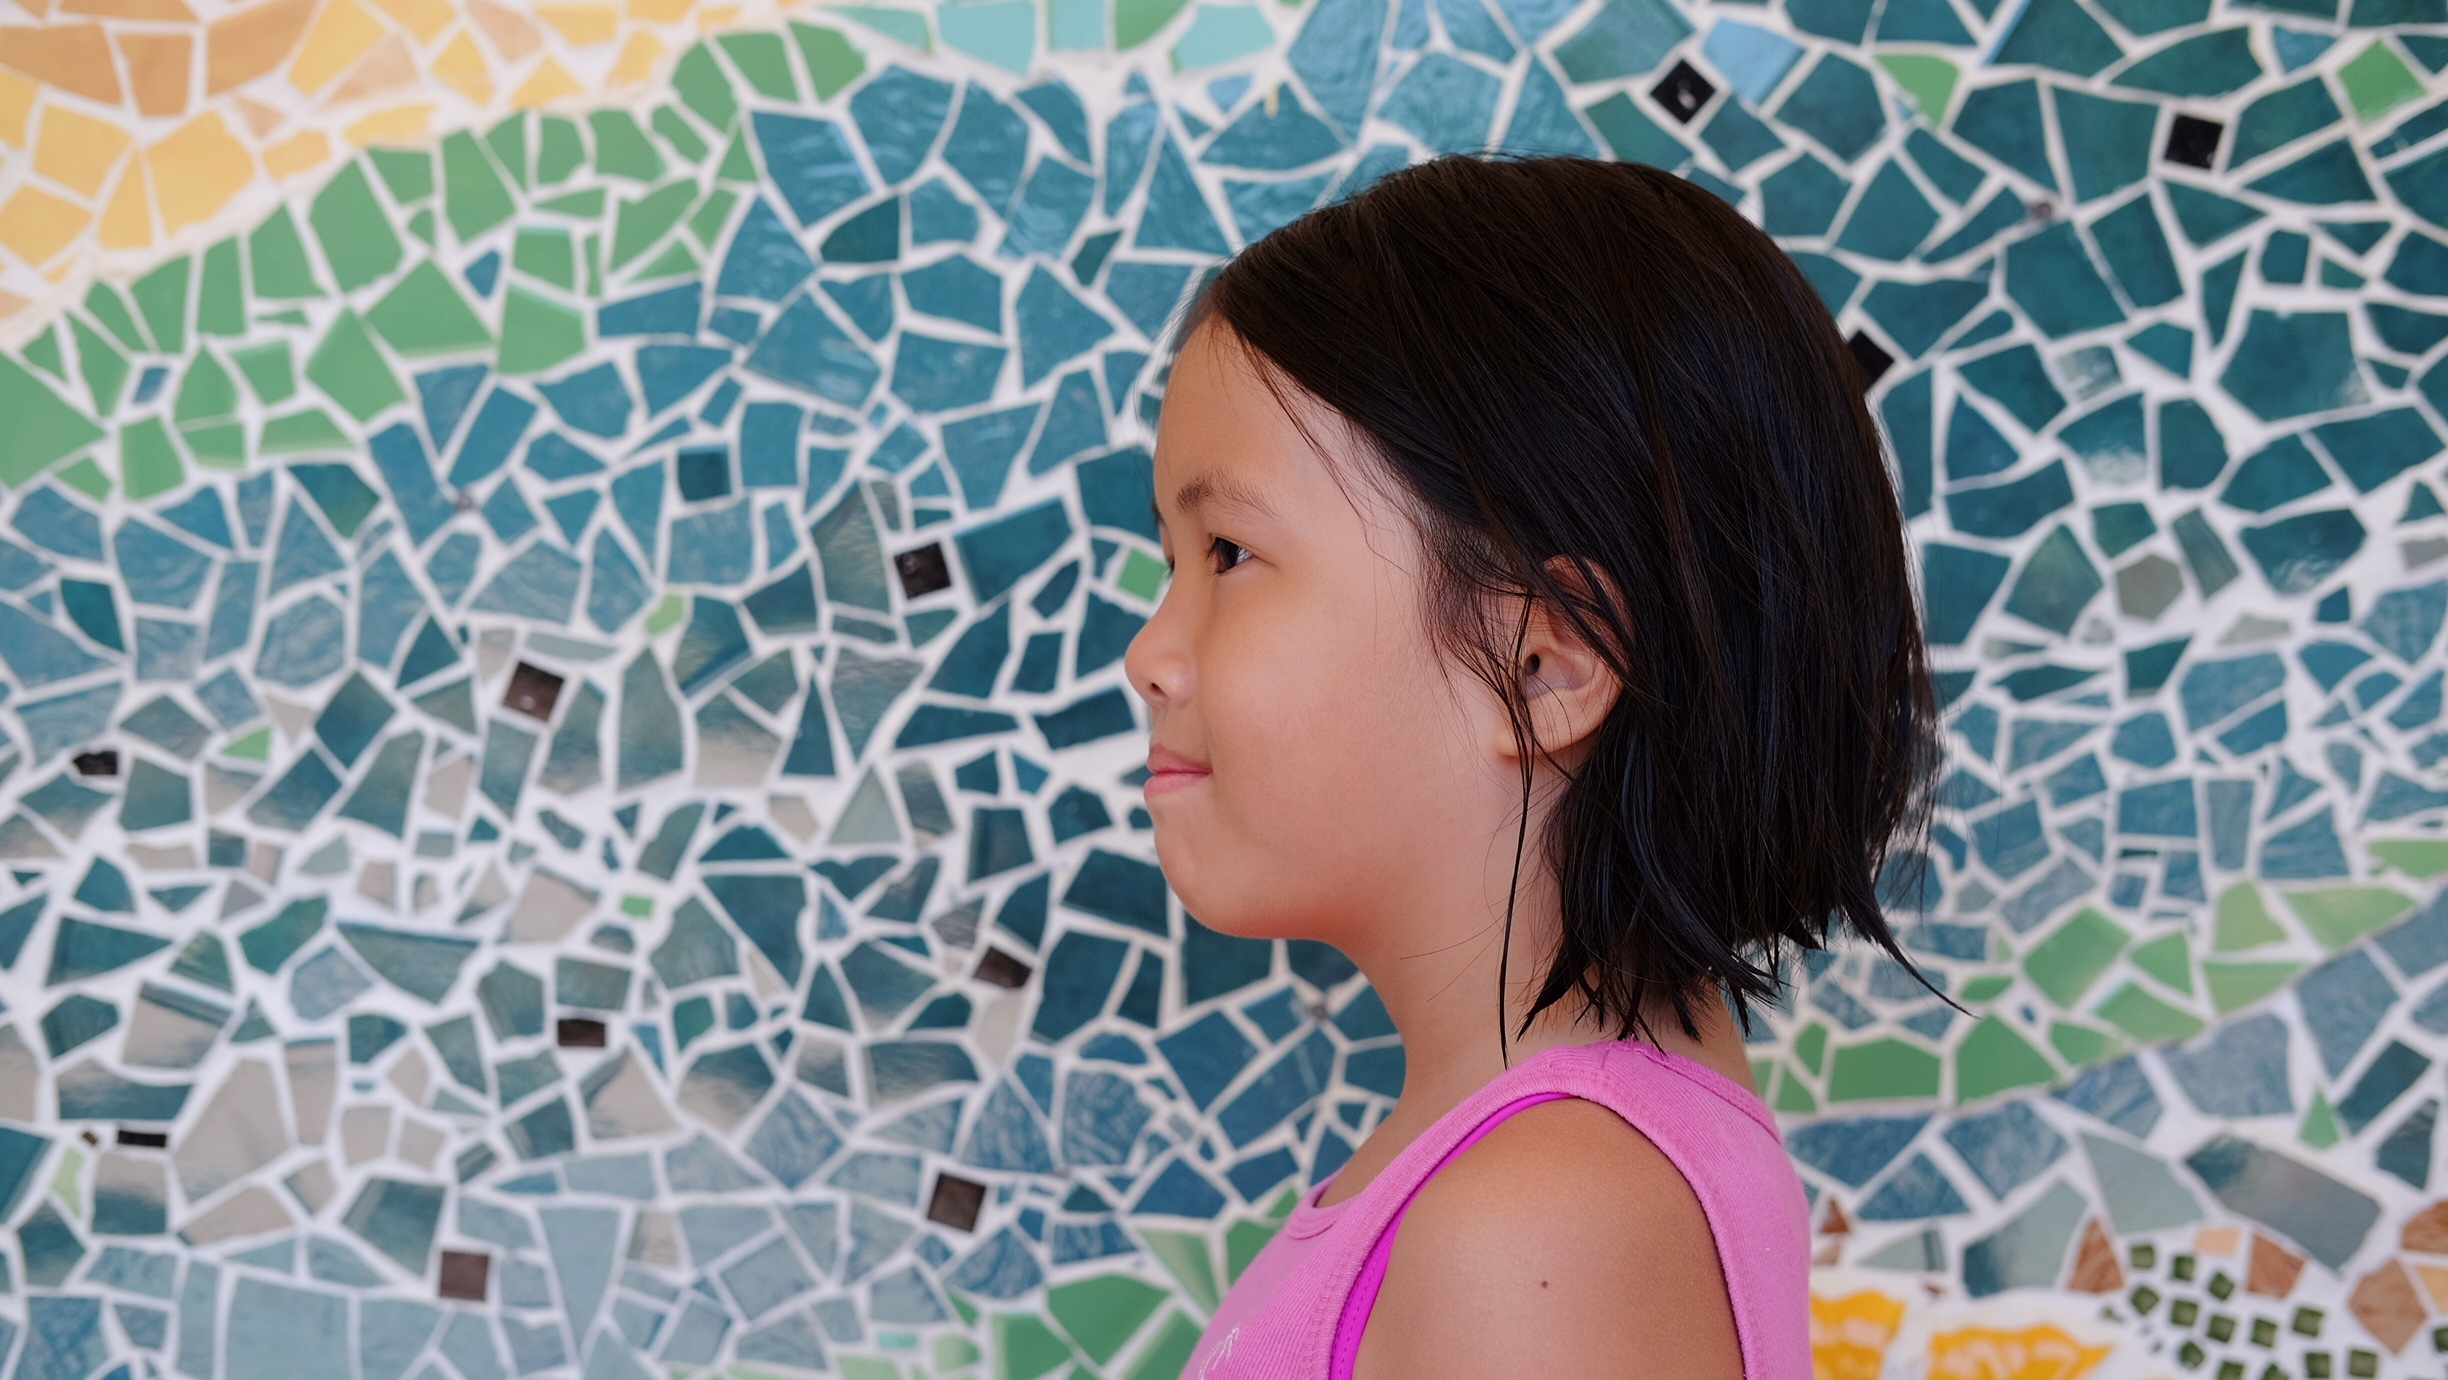 Couldn't resist taking a photo of my niece, Cibelli, with this beautiful mosaic as a backdrop